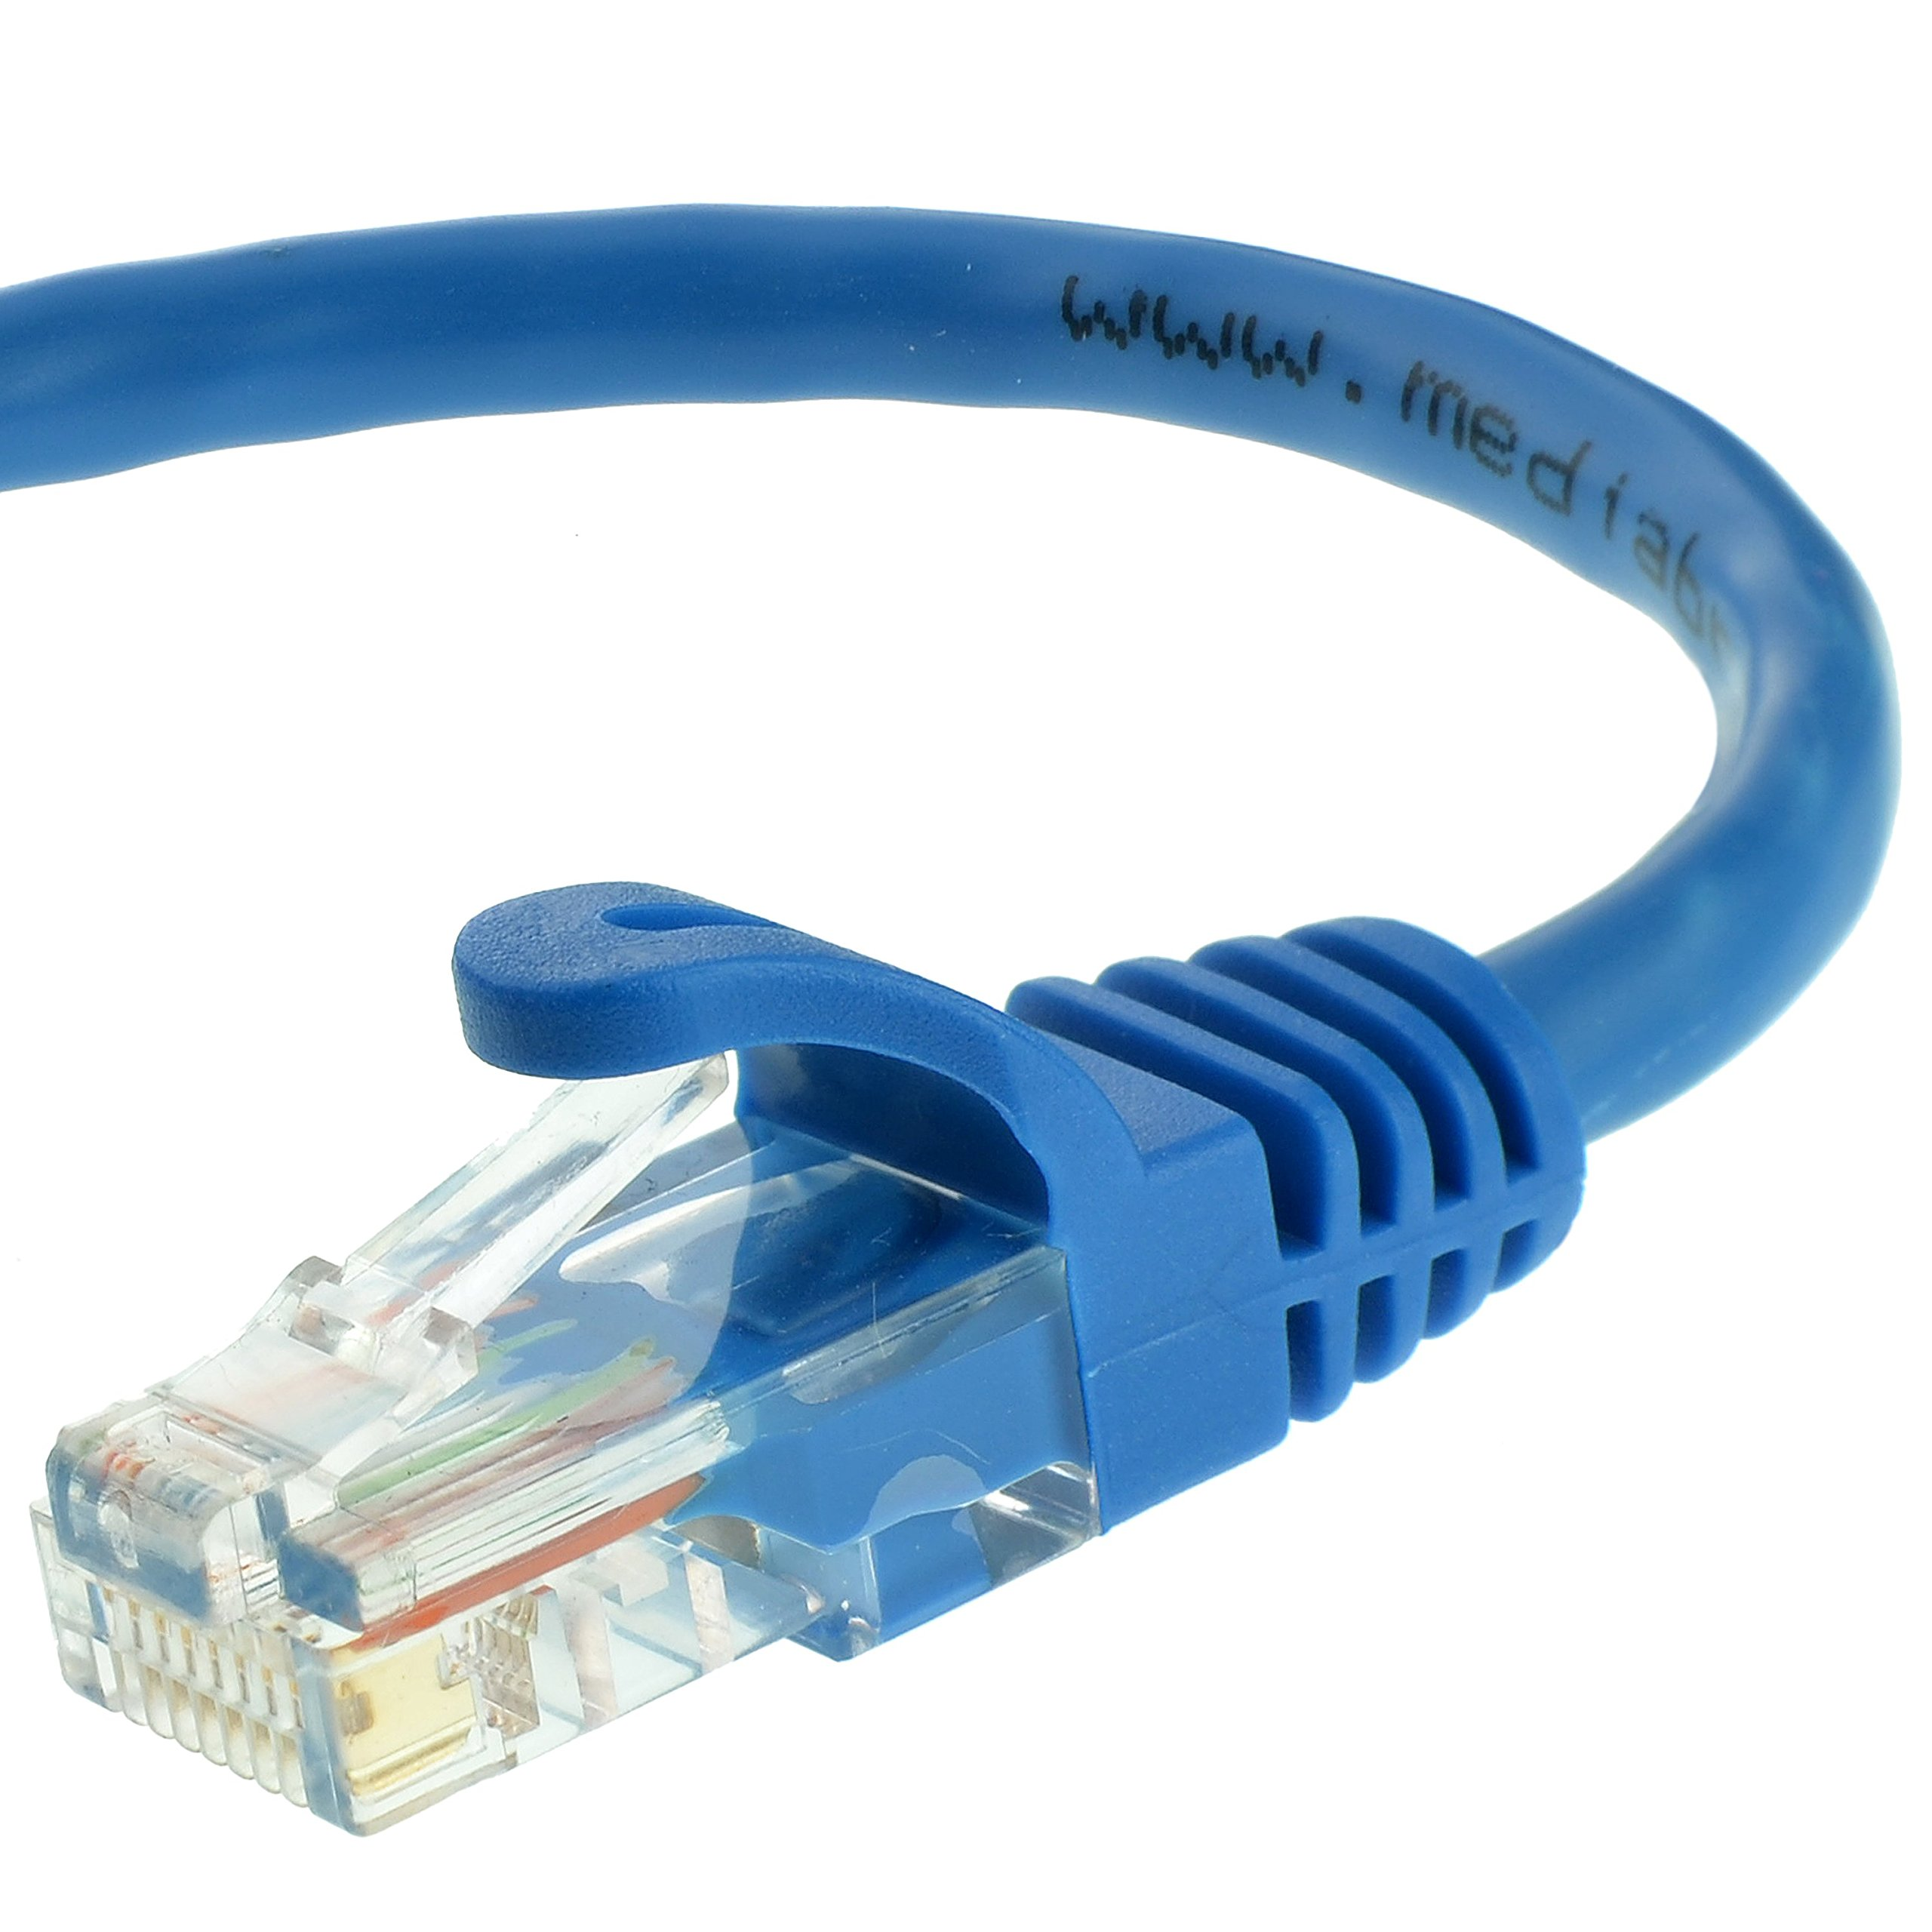 Mediabridge Ethernet Cable (50 Feet) - Supports Cat6 / Cat5e / Cat5 Standards, 550MHz, 10Gbps - RJ45 Computer Networking Cord (Part# 31-399-50X) by Mediabridge